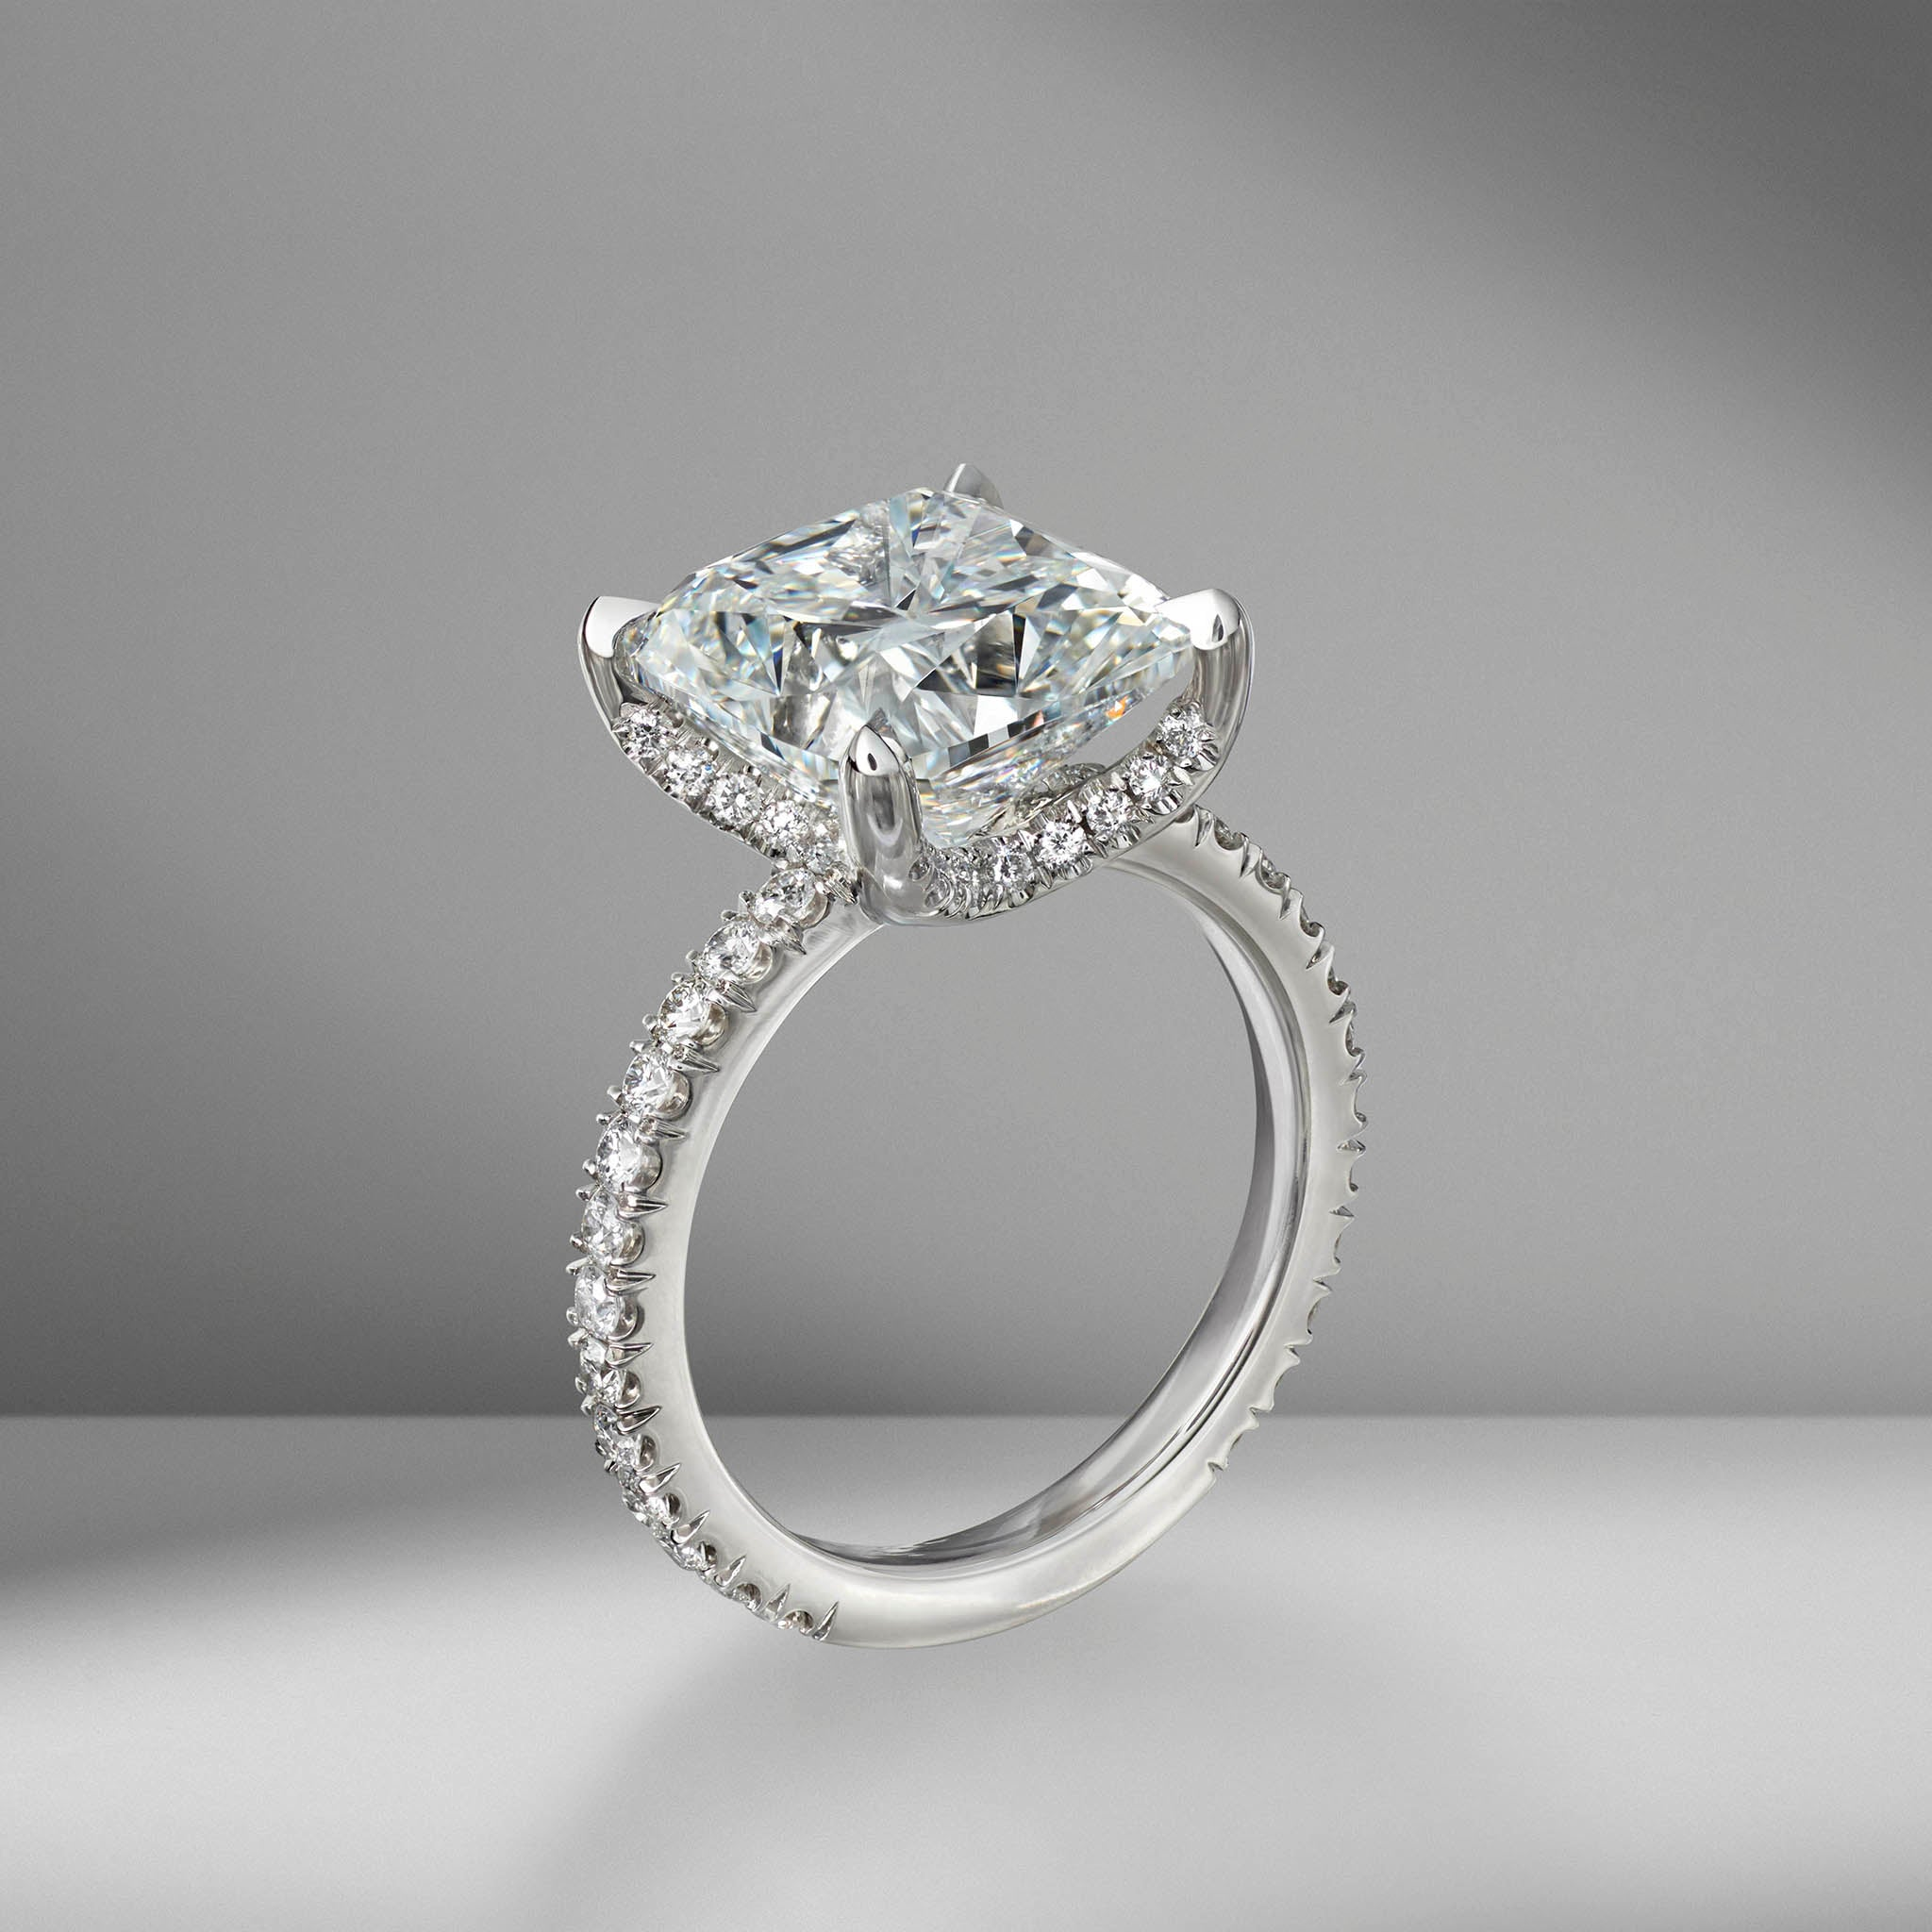 Cushion Cut Engagement Ring with Diamond Pavé